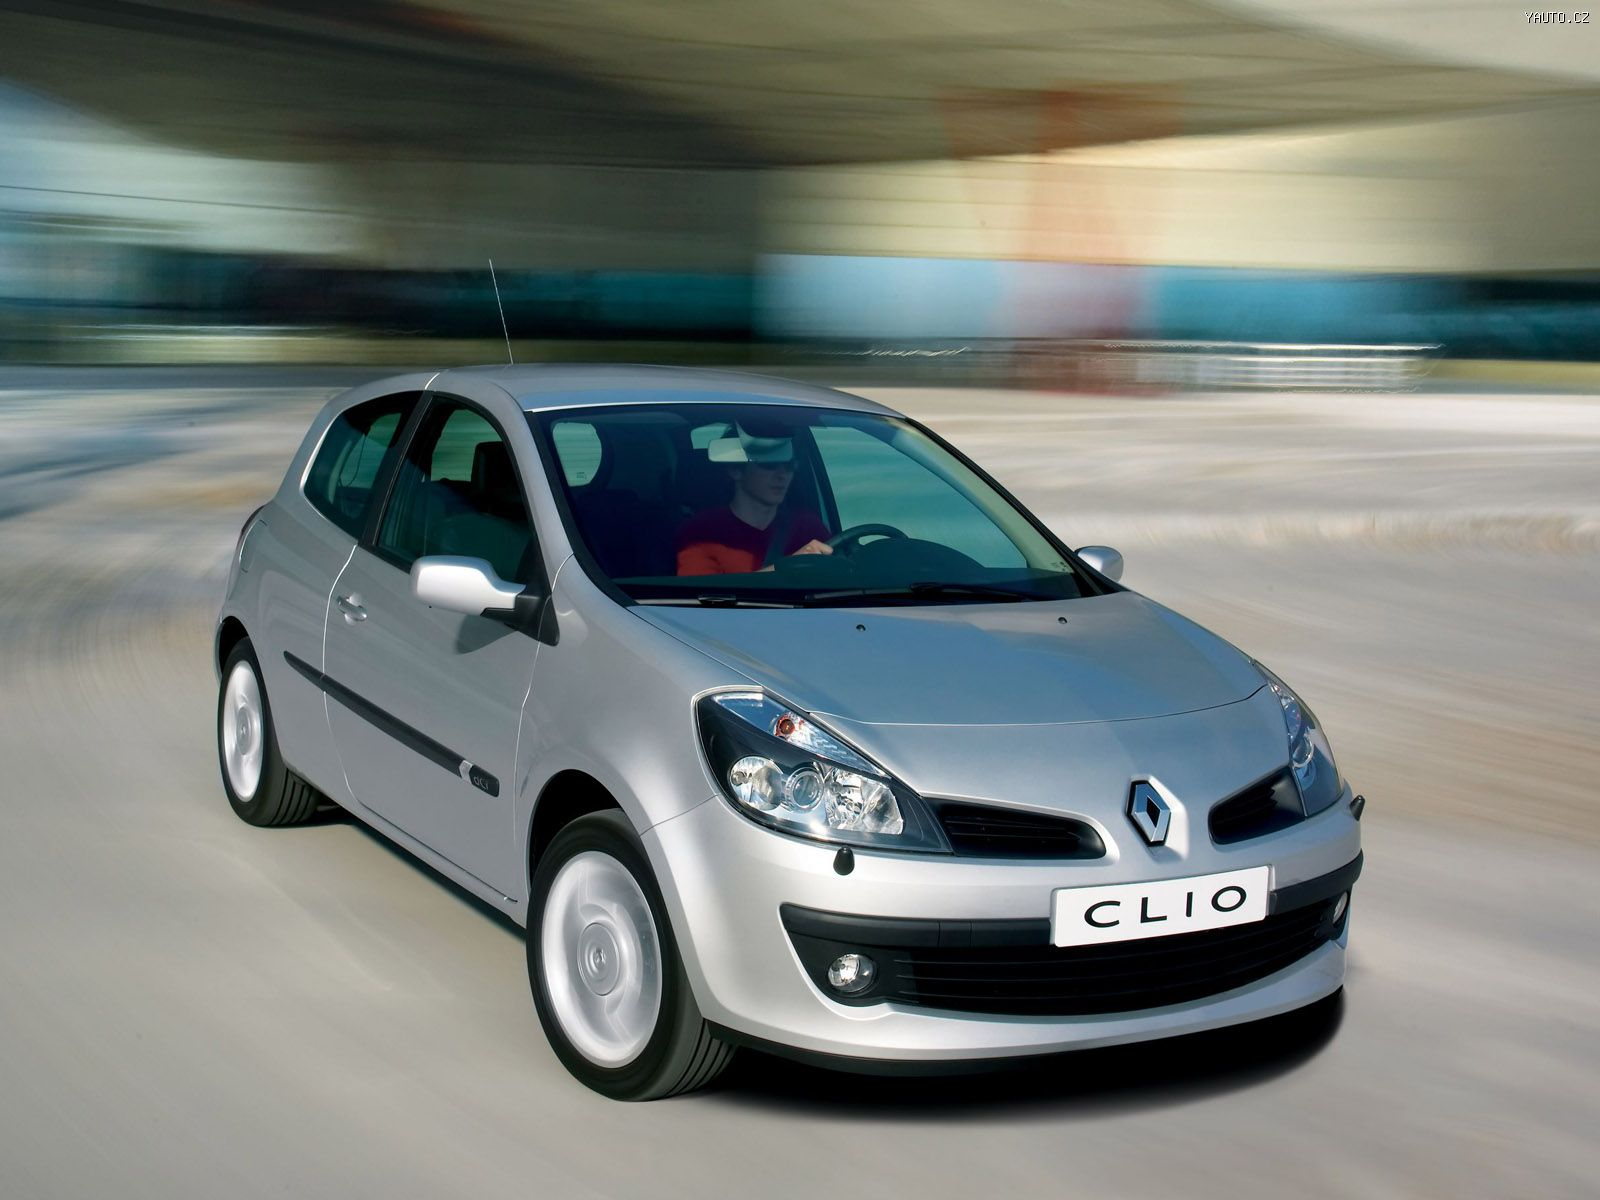 2005 renault clio iii 1 4 related infomation. Black Bedroom Furniture Sets. Home Design Ideas